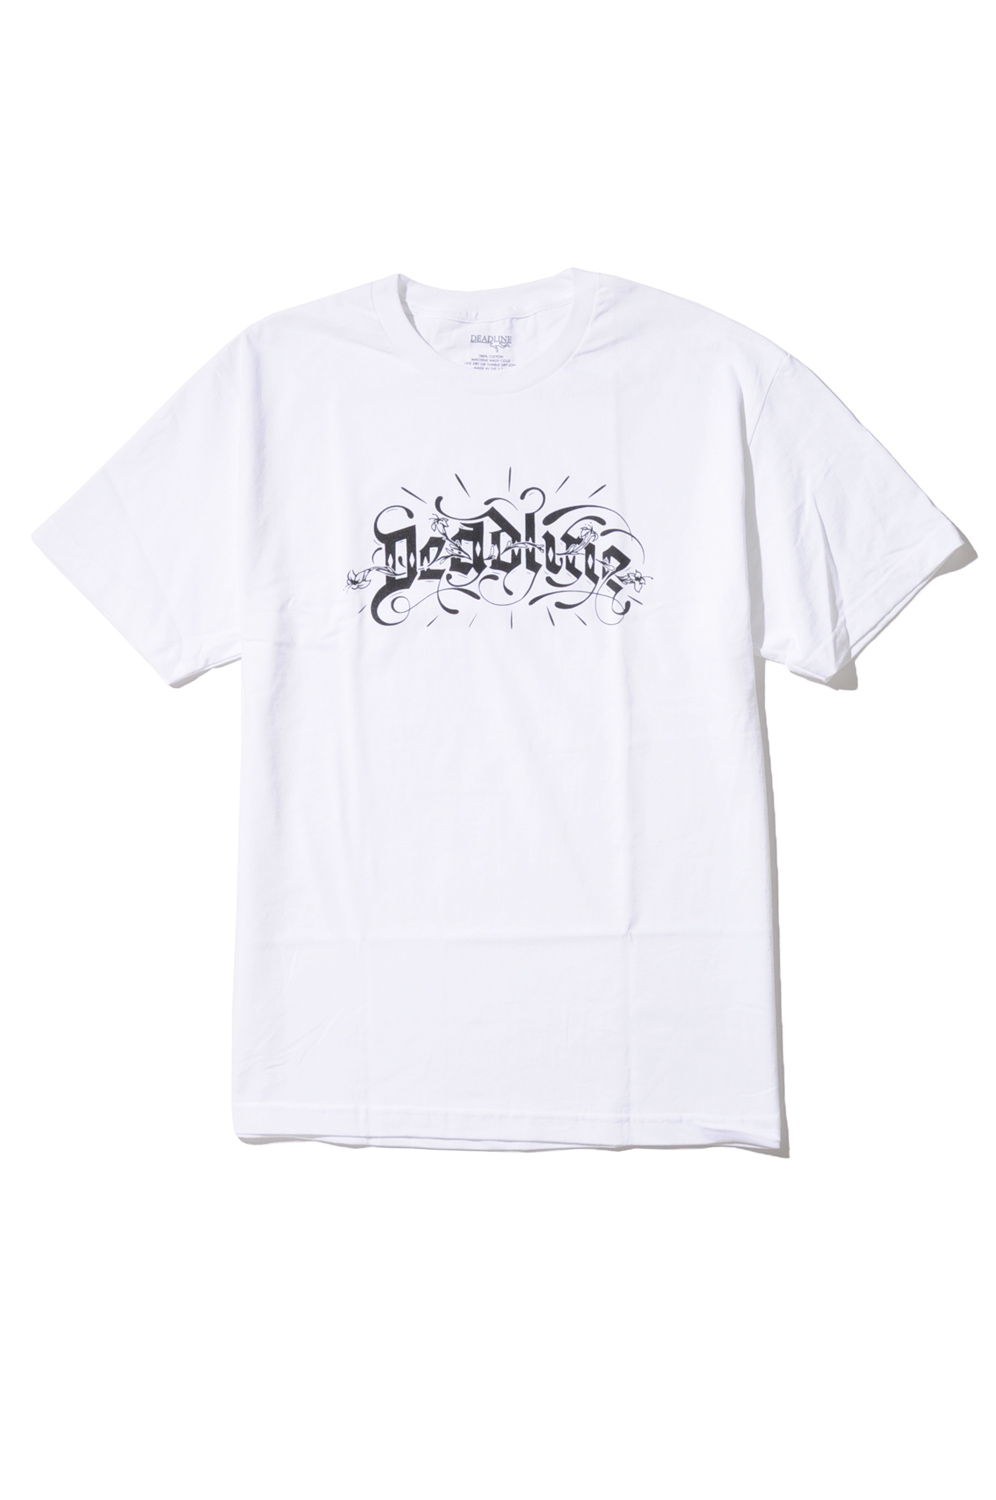 画像1: 【DEADLINE】Cuttings Tee